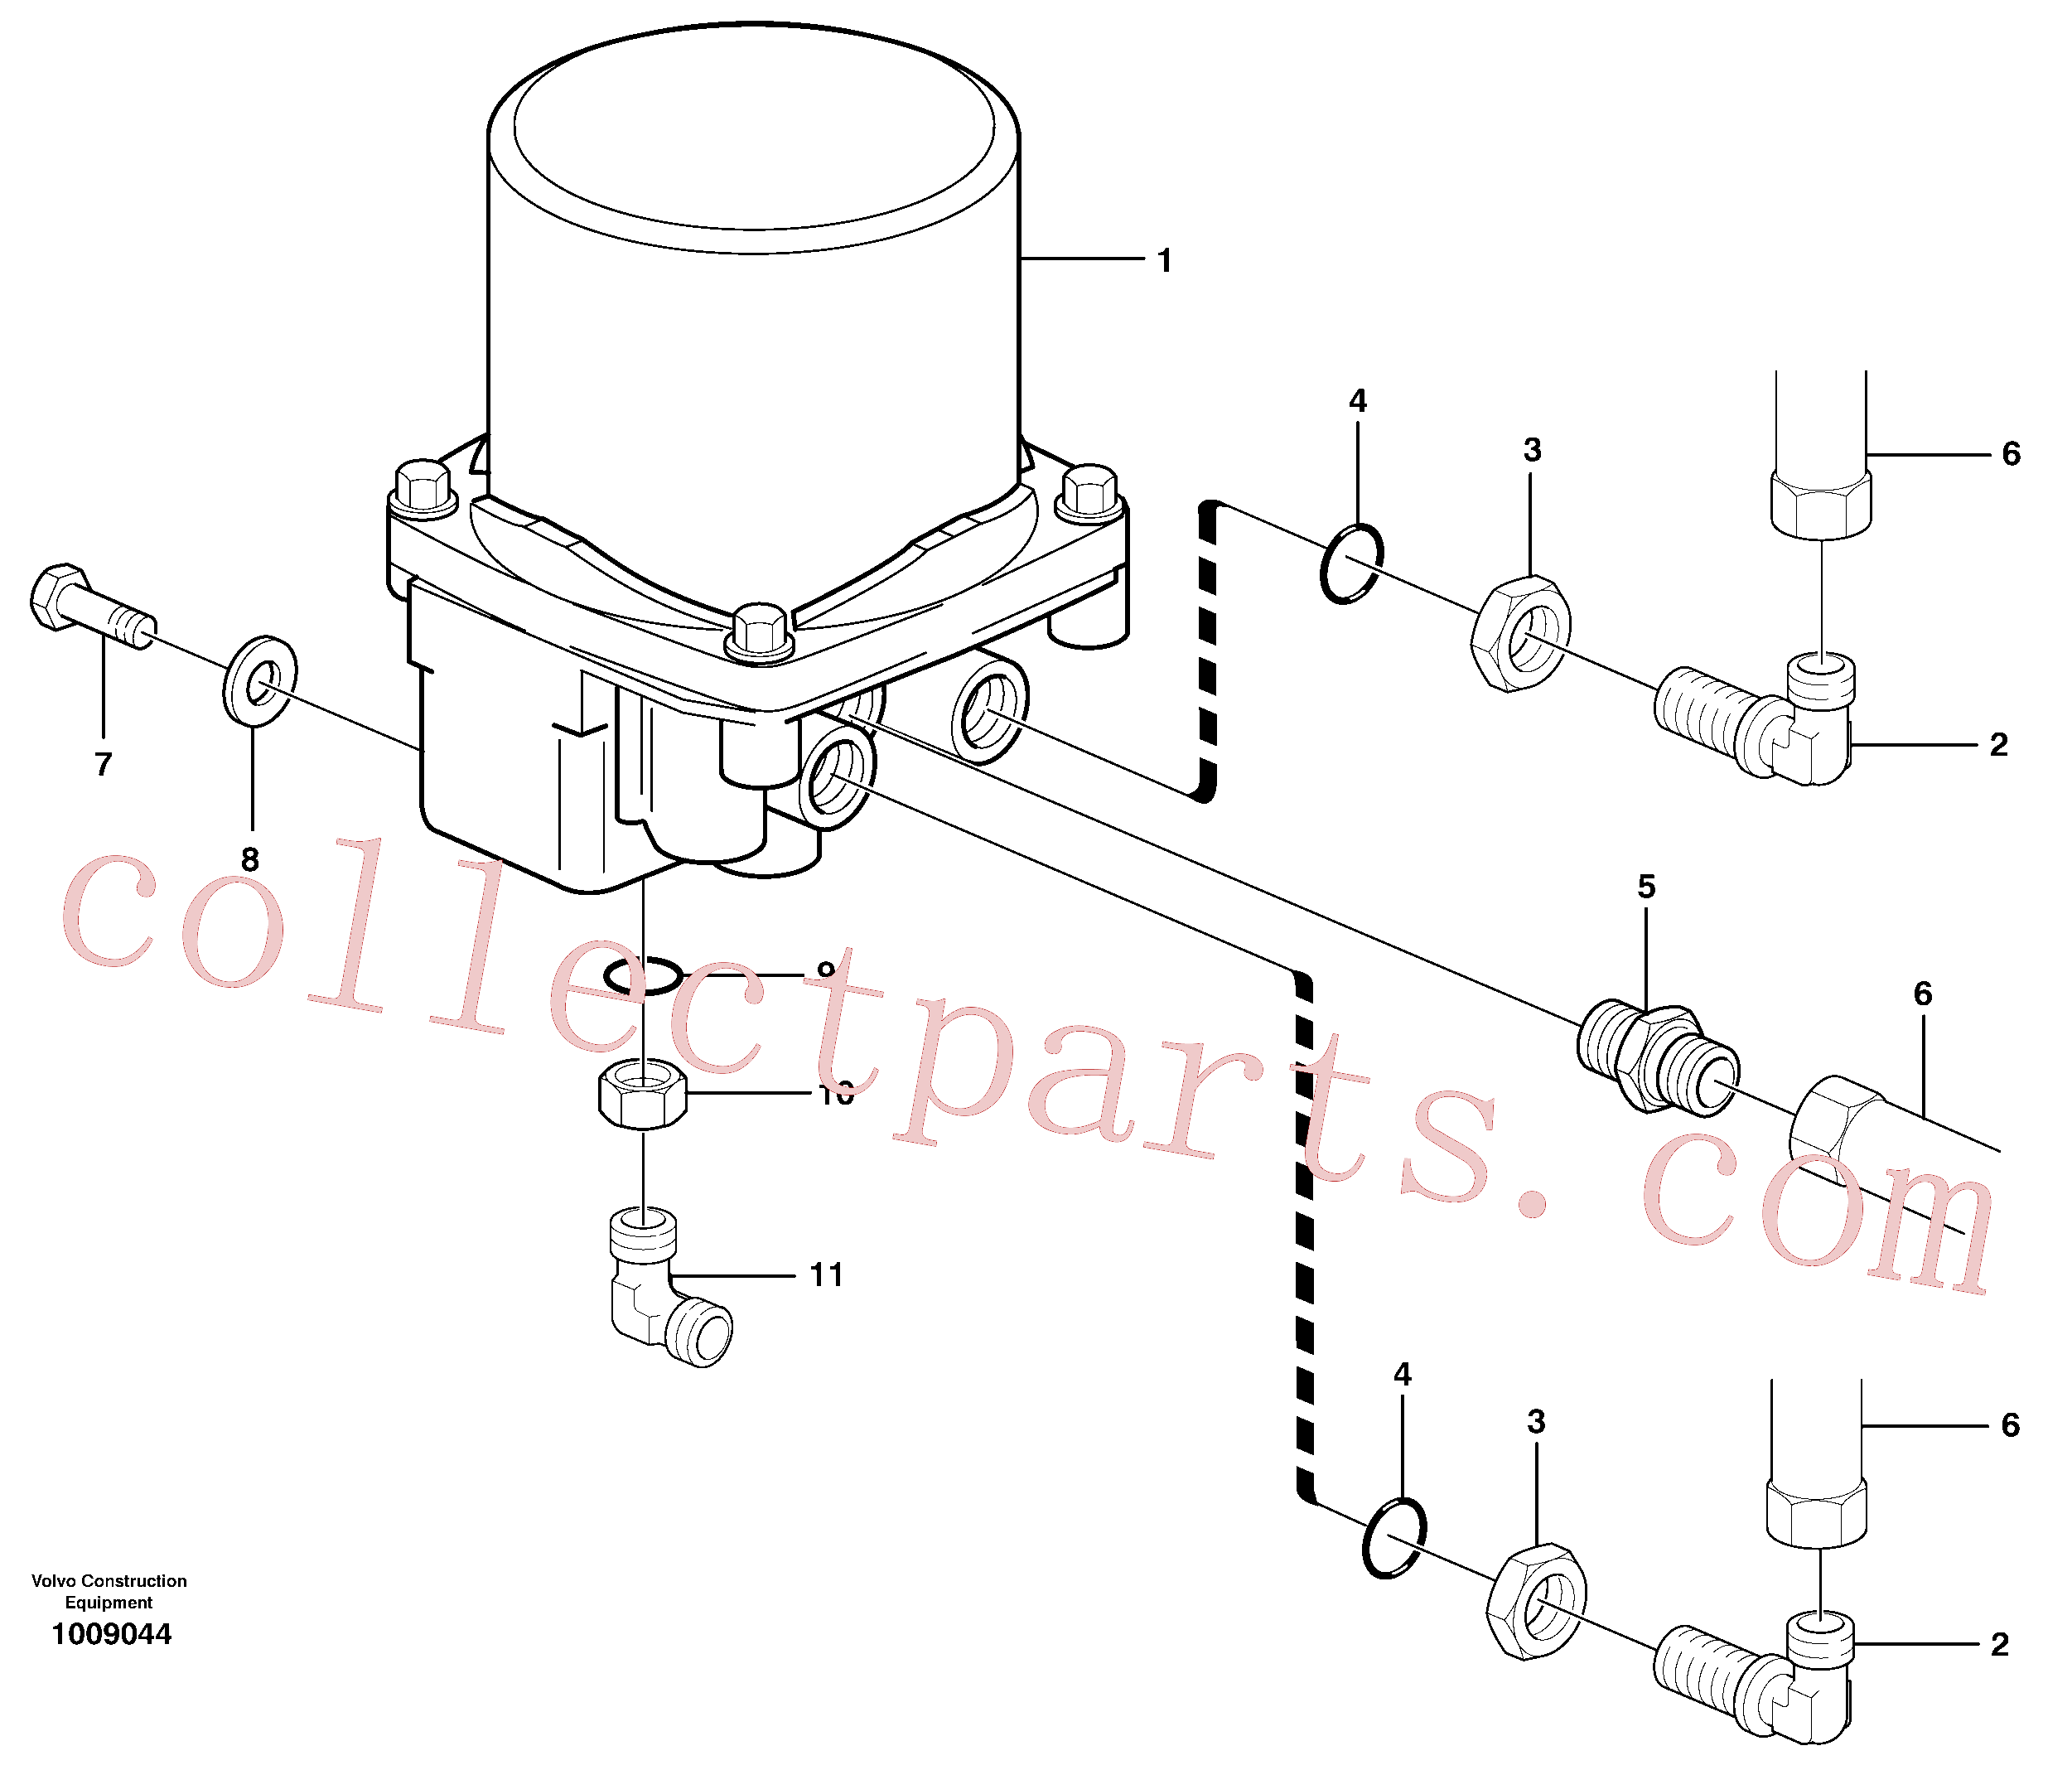 VOE946817 for Volvo Receiver drier(1009044 assembly)